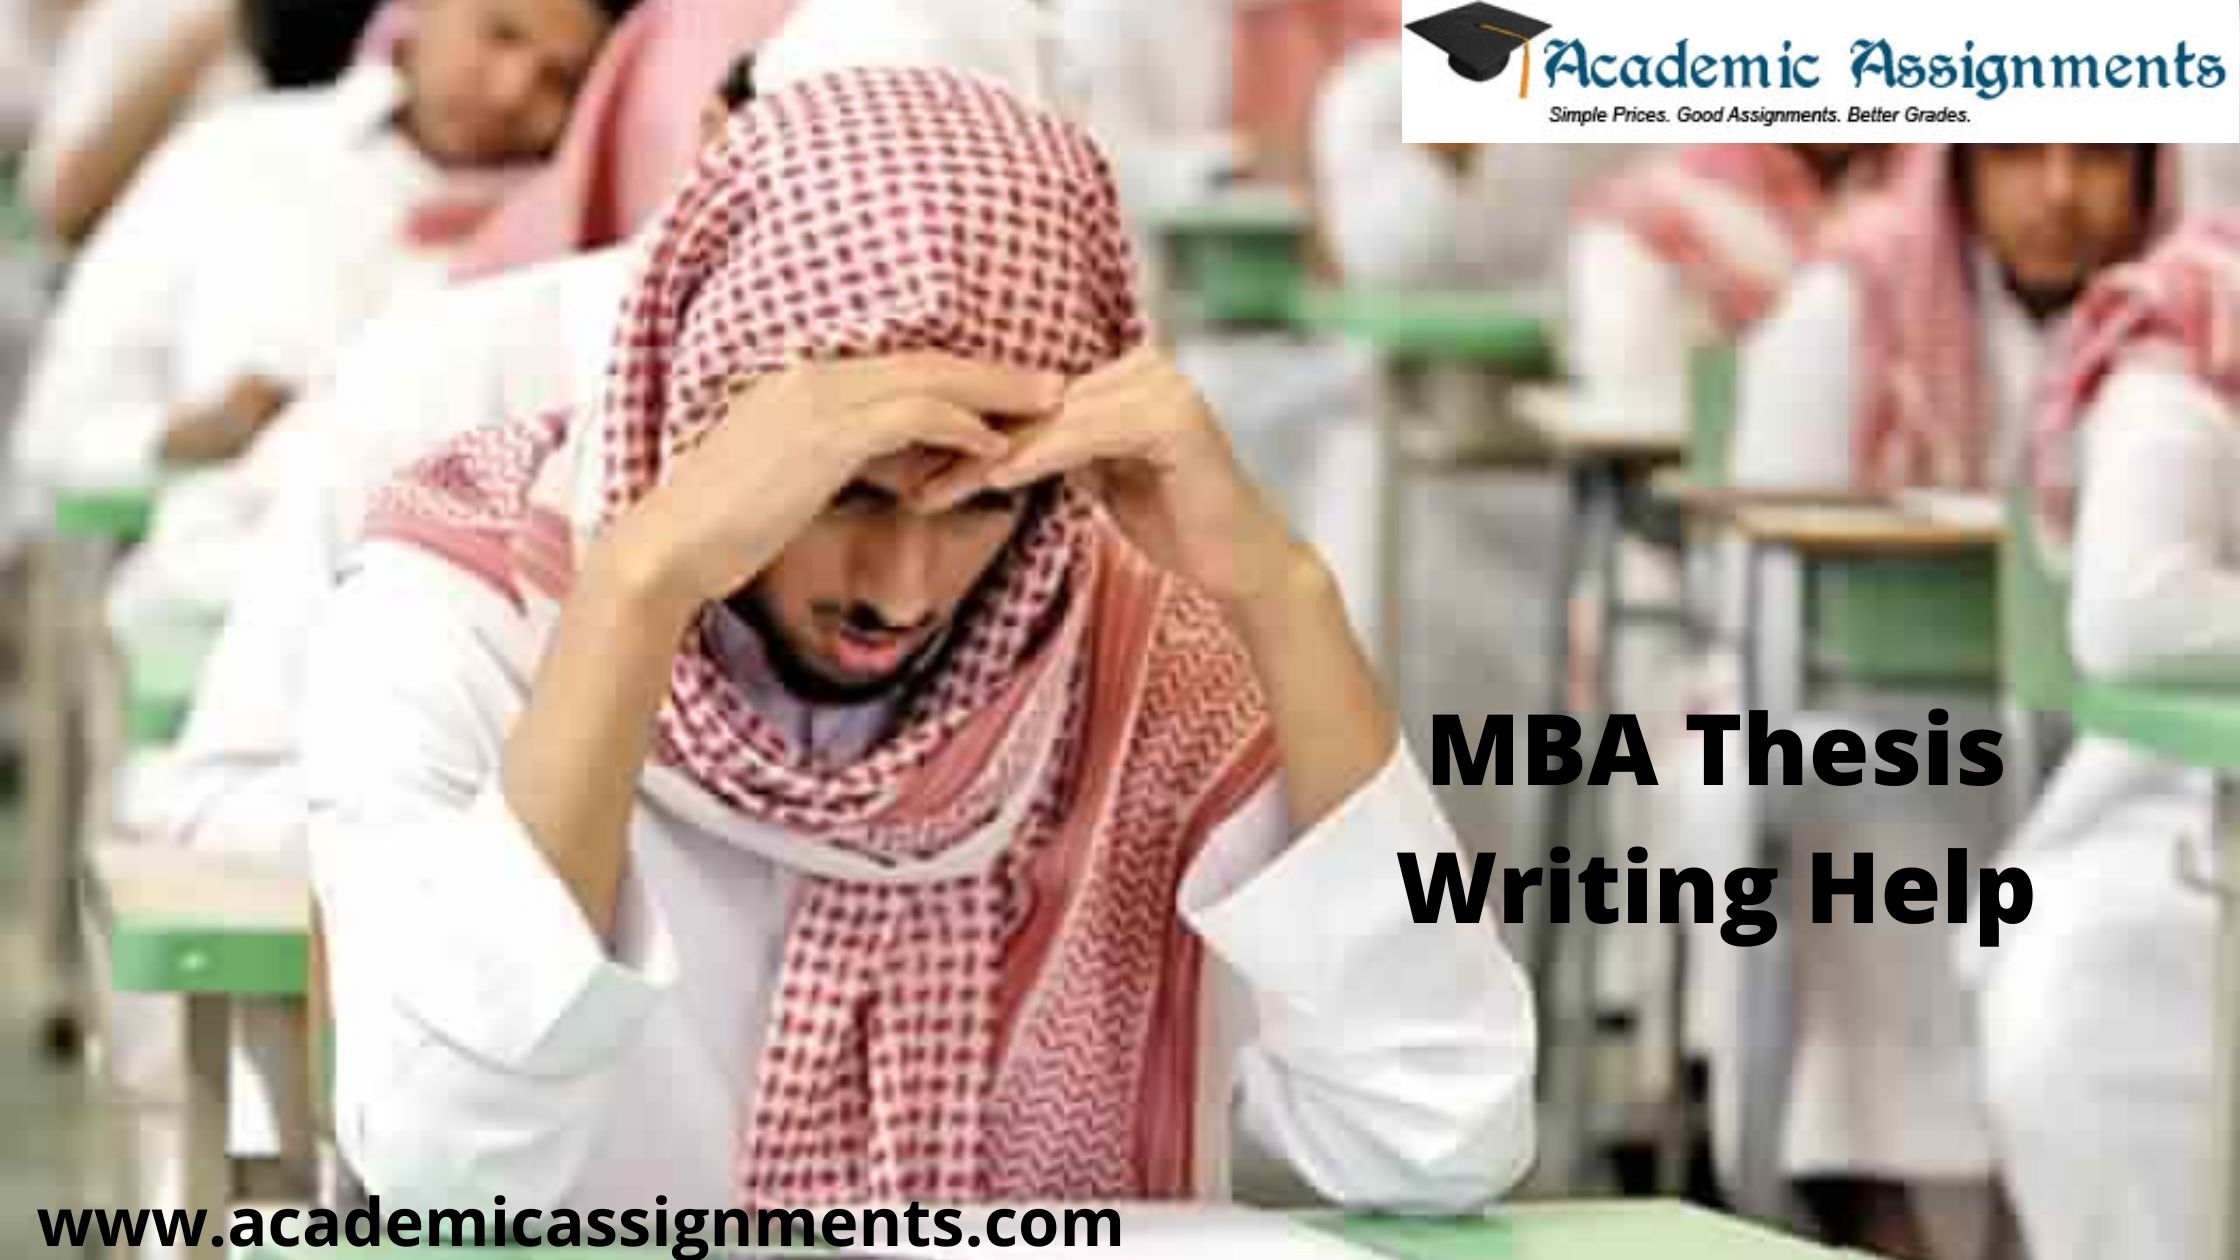 MBA Thesis Writing Help For Arabian Students